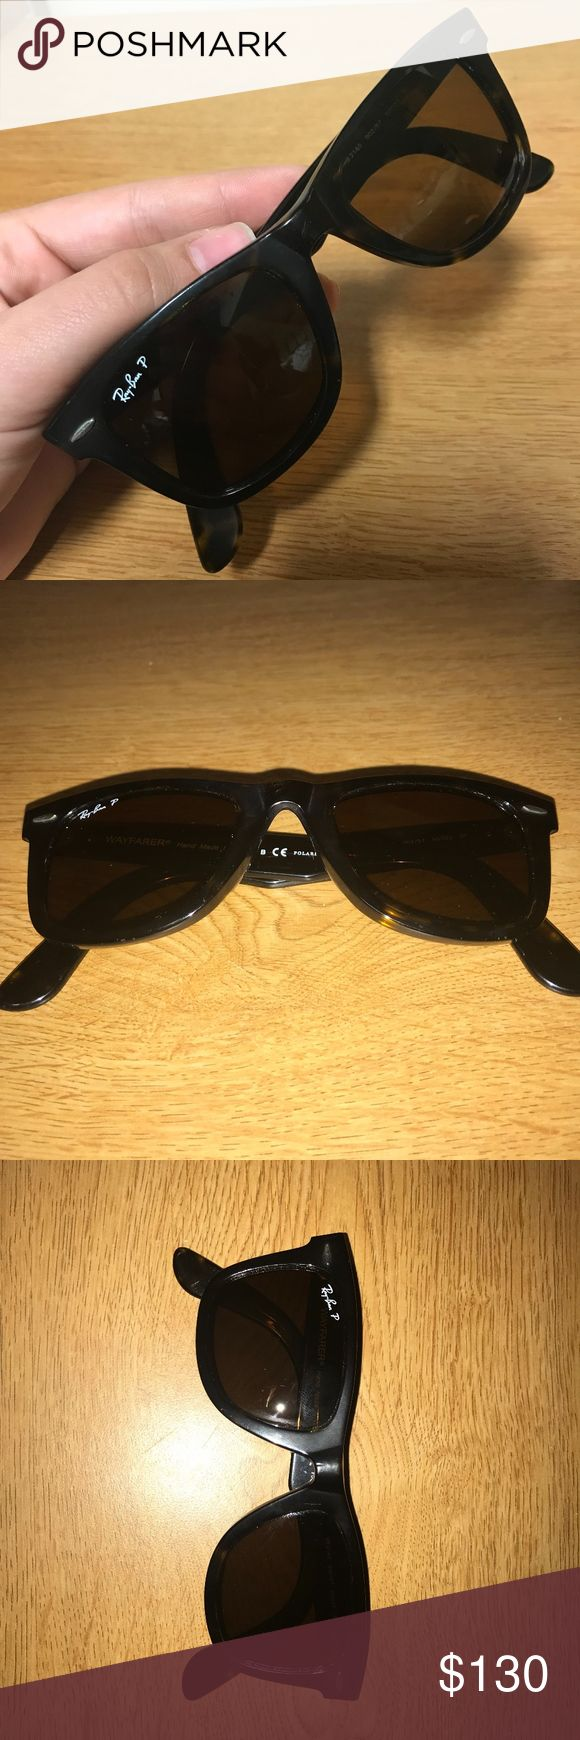 Ray-Ban Original Wayfarer Classic Polarized These polarized tortoise sunglasses have been worn a few times with minimal scratches. Lenses look 100% clear when wearing them. They have the original classic tilted look. Ray-Ban Accessories Sunglasses